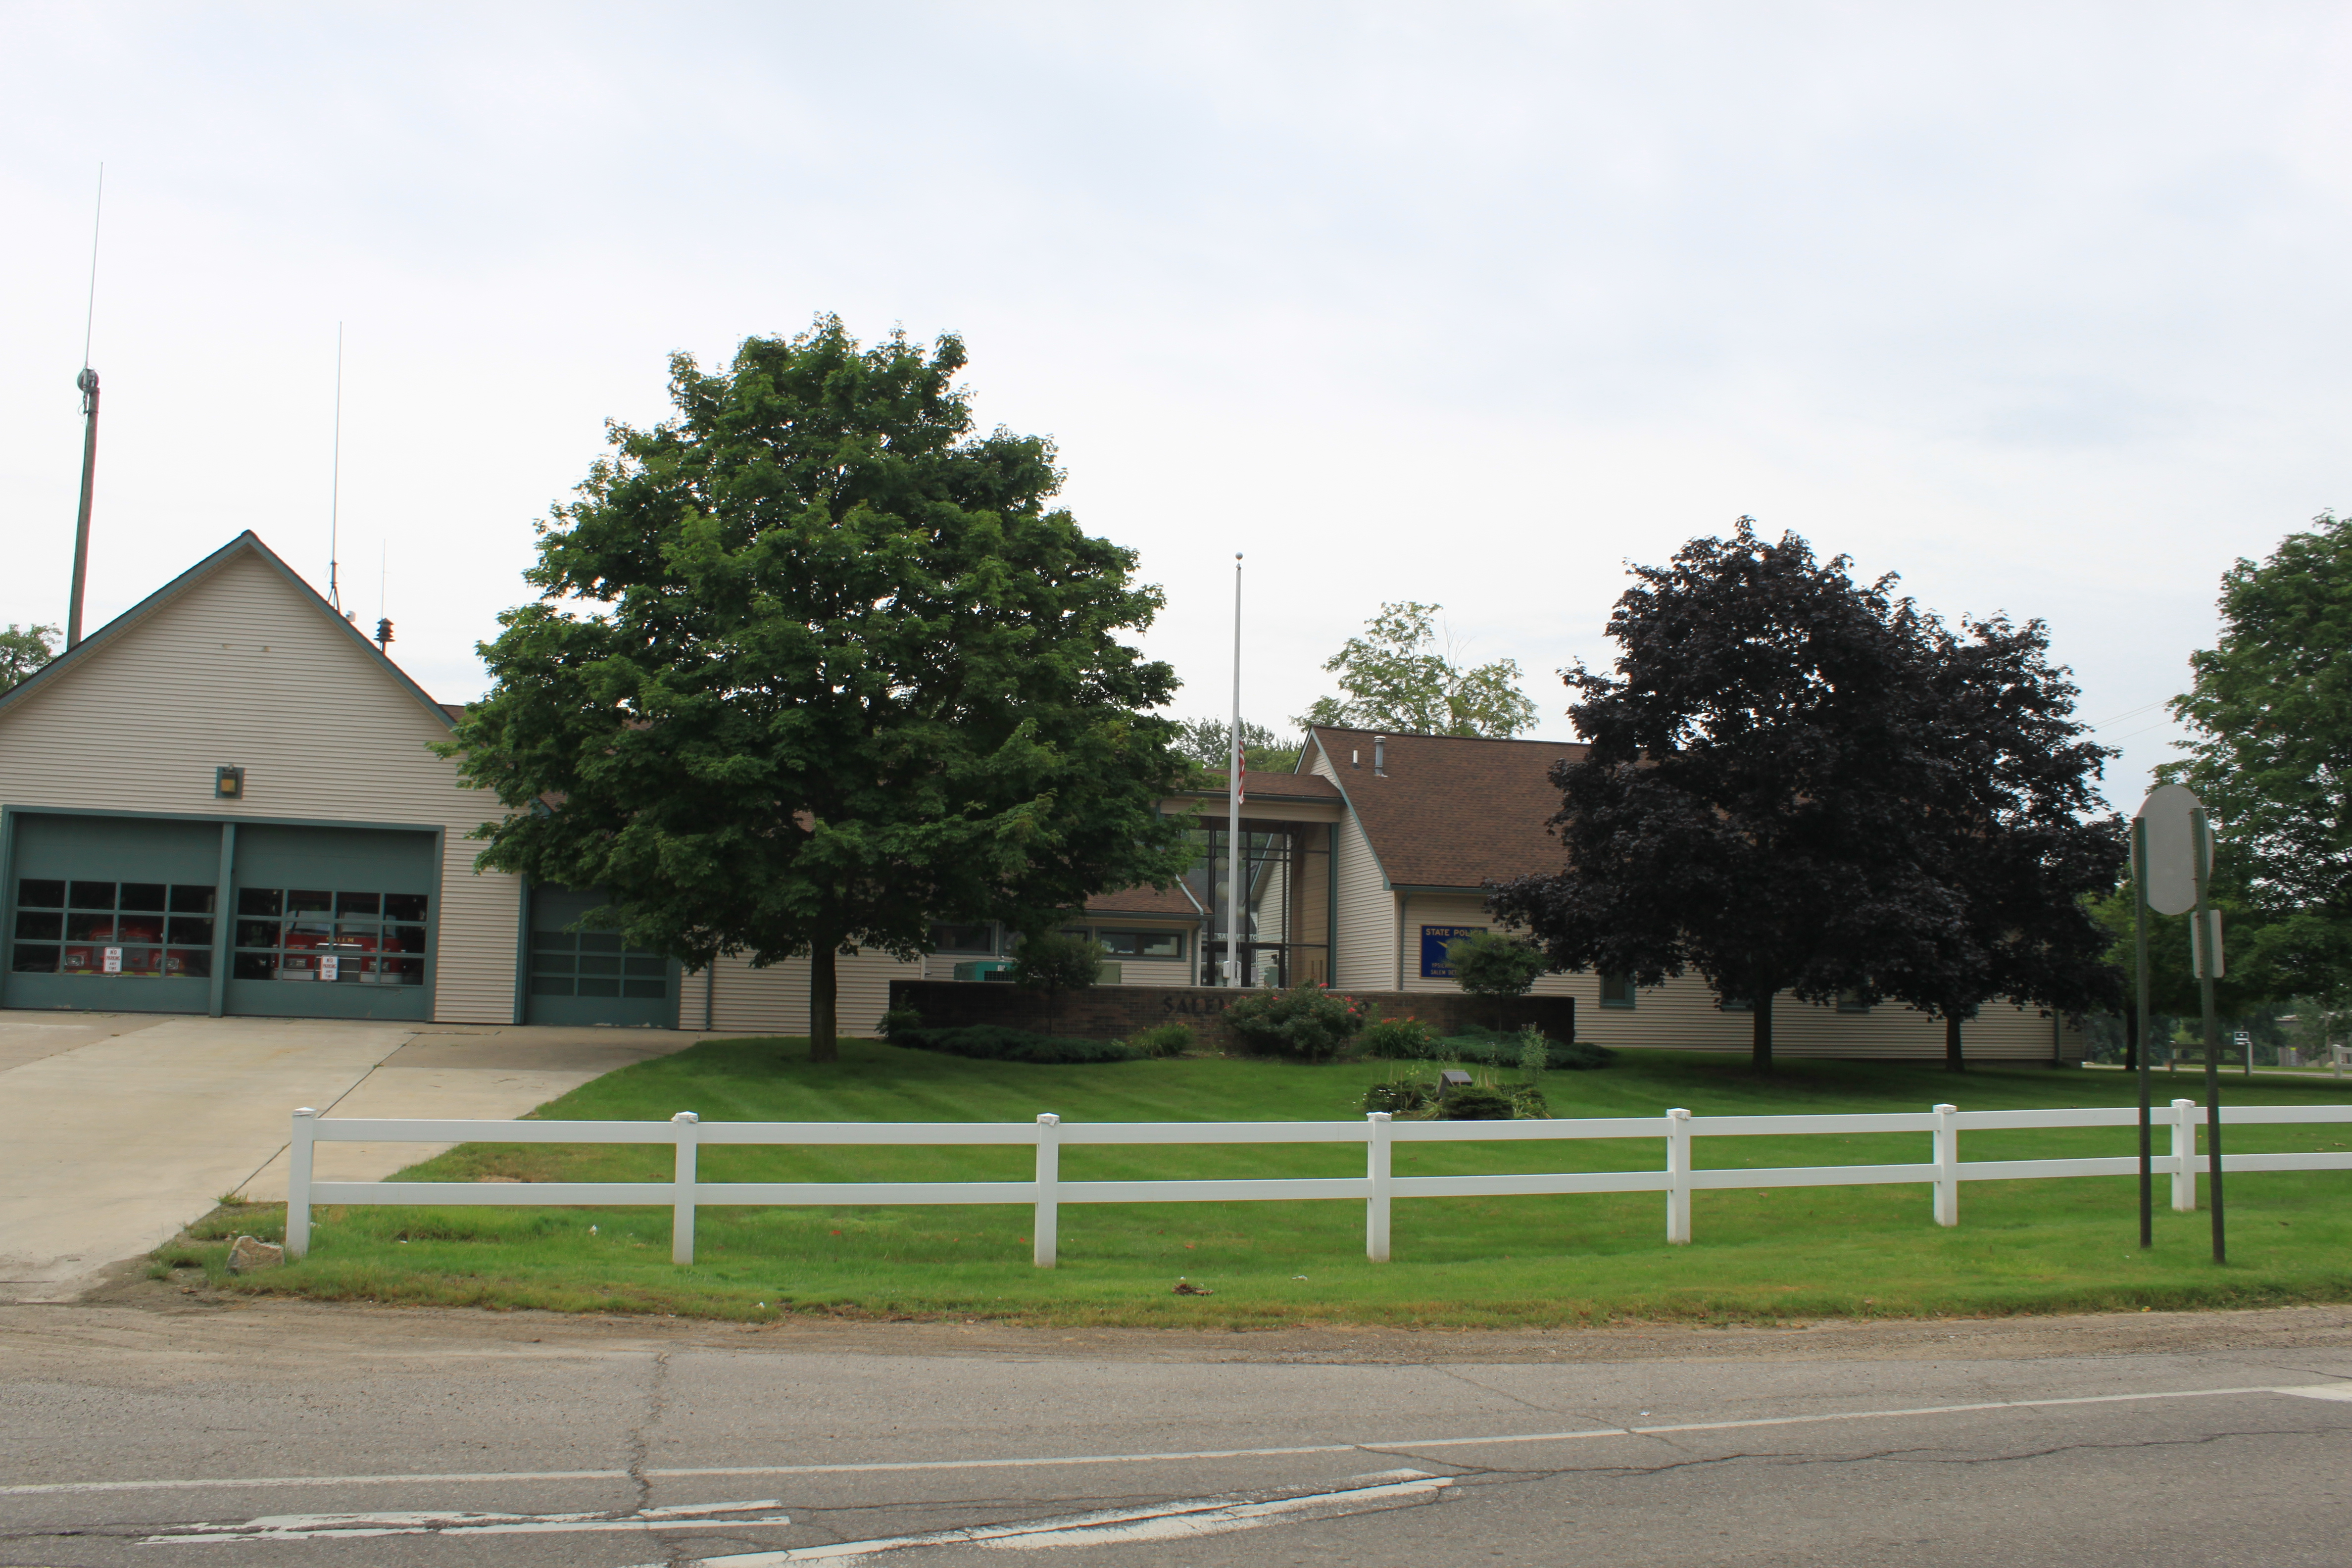 File:Salem Township Hall.JPG - Wikipedia, the free encyclopediapicturesmemek anak smp lagi di tusuk penis